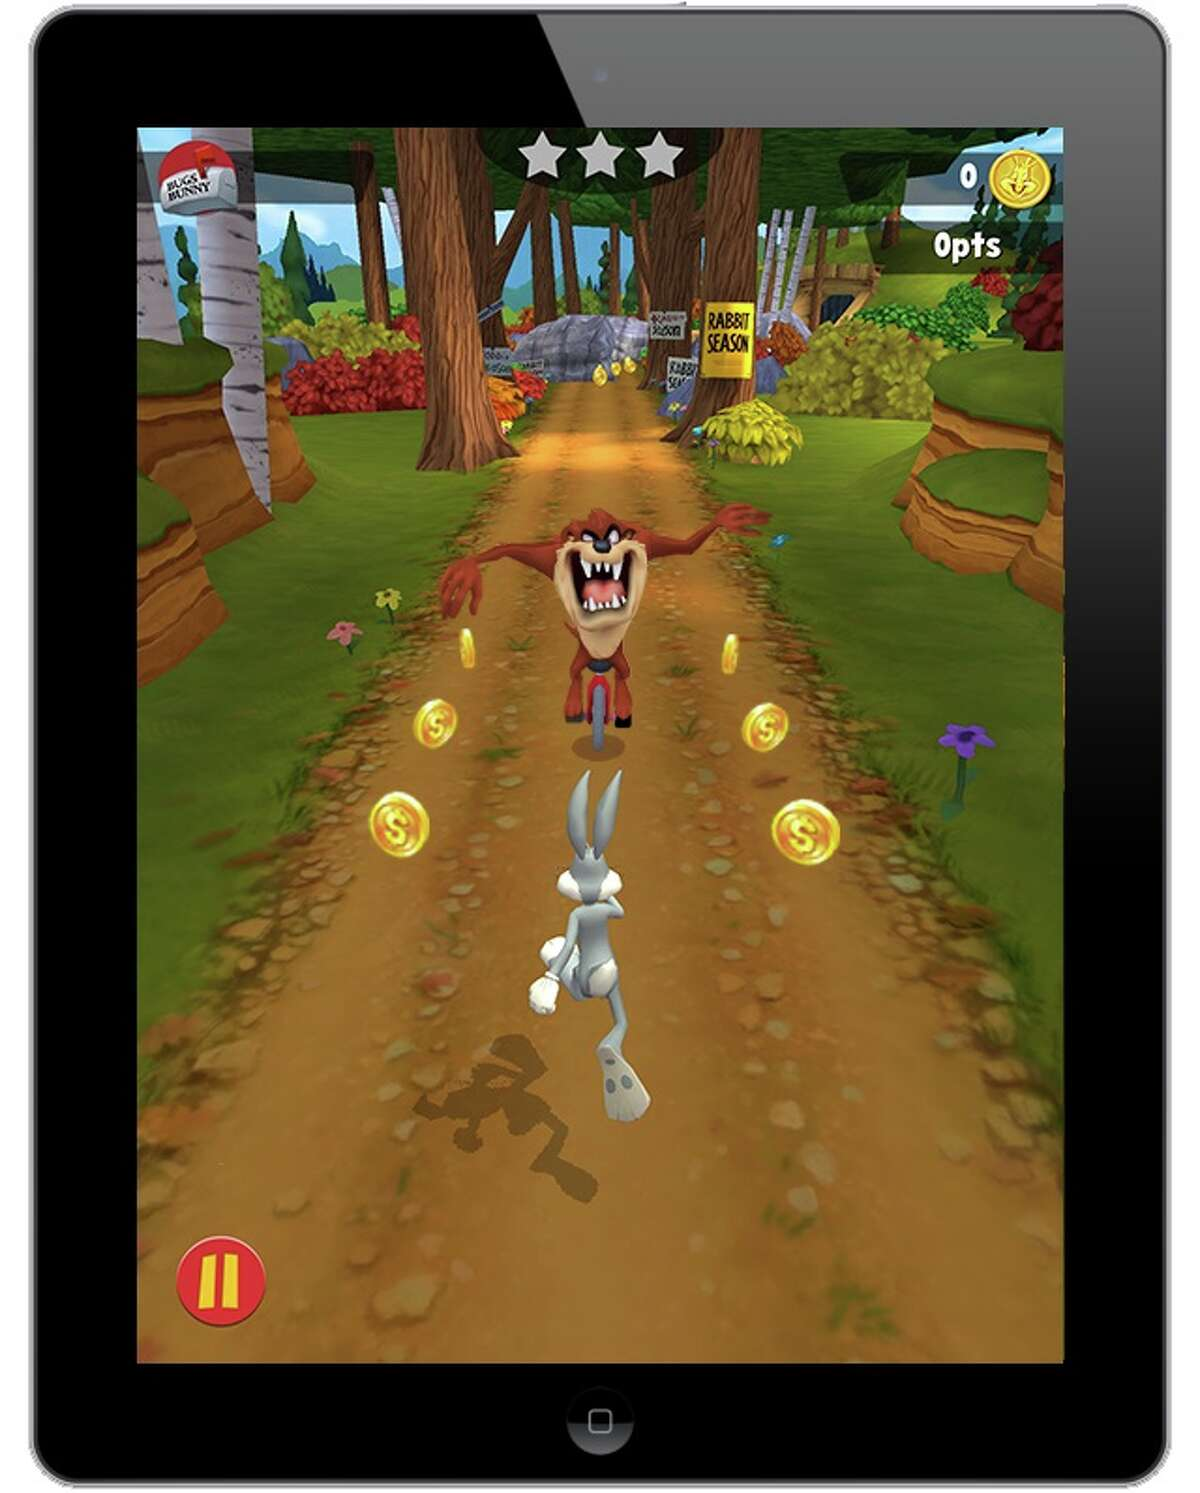 """Zynga has licensed Bugs Bunny, Tweety Bird, Road Runnder and other Looney Tunes cartoon characters from Warner Bros. to develop new mobile games like """"Looney Tunes Dash."""" In this screen grab, Bugs Bunny takes on the Tazmanian Devil"""